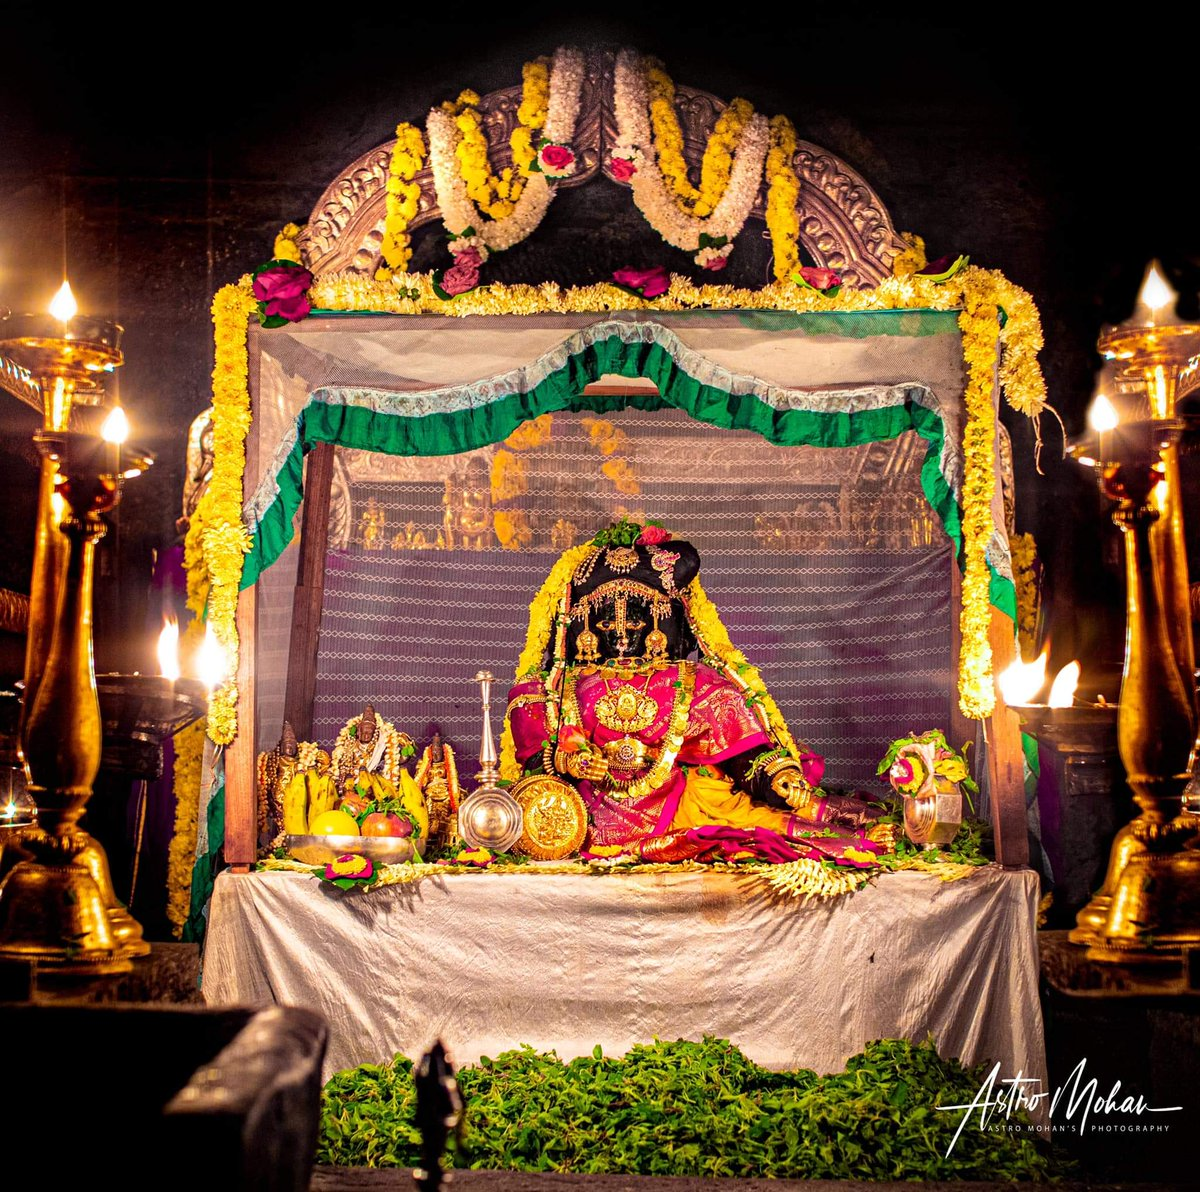 On the occasion of #Navratri #SrivishwaVallabhaThirtharu decorated #lord #krishna in  #Rukmini alankar at Sri #KrishnaMatha, #Udupi and also offered laksha #Tulasi archane and mahapooje. ಶ್ರೀ ಕೃಷ್ಣ Photo credit: AstroMohanpic.twitter.com/HQ180fdztY